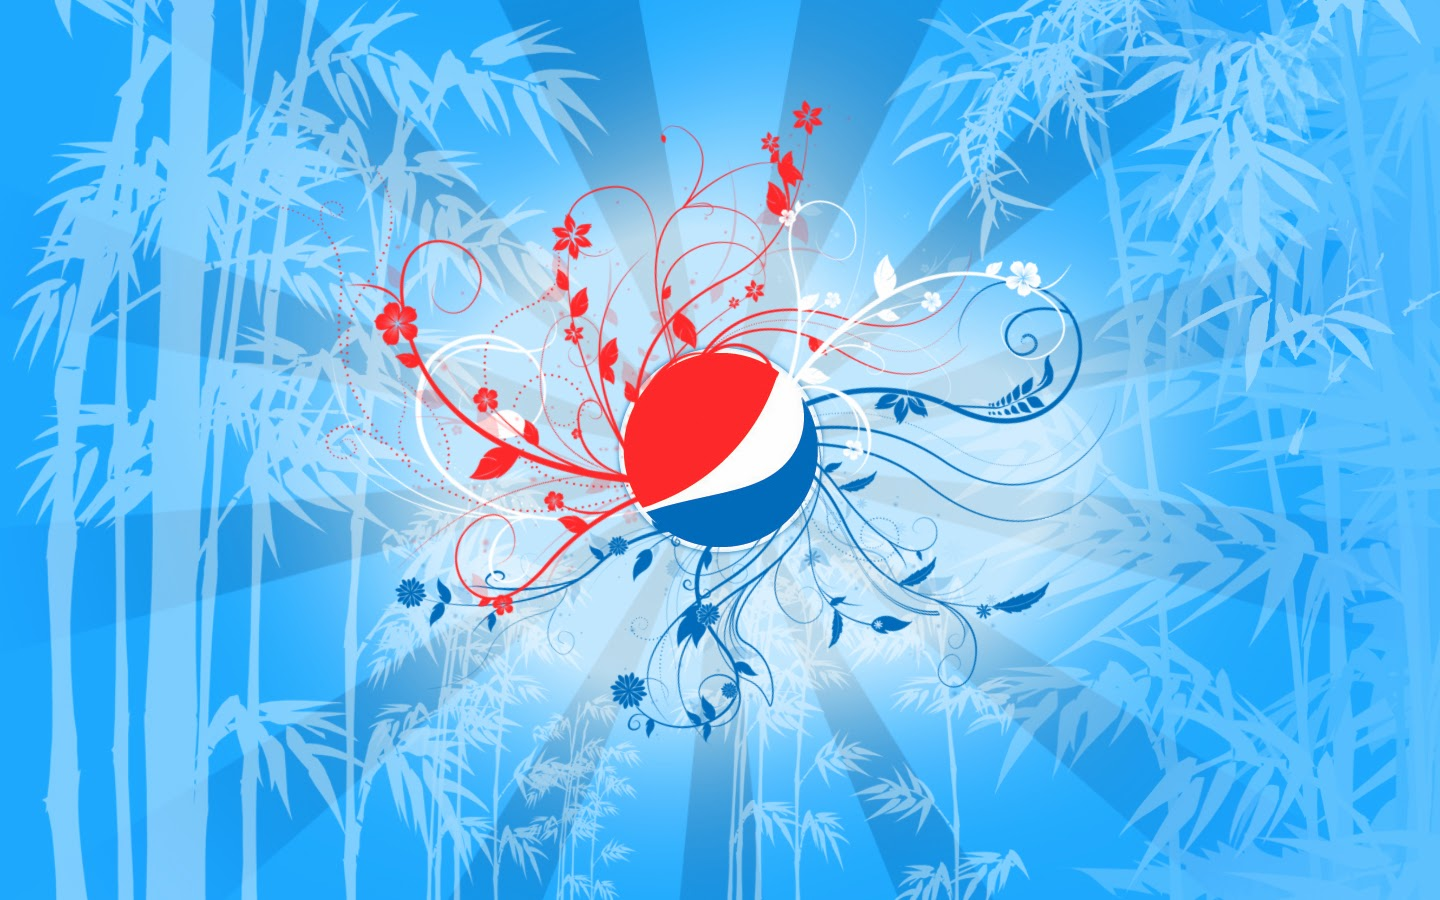 Pepsi Wallpaper For Computer Background